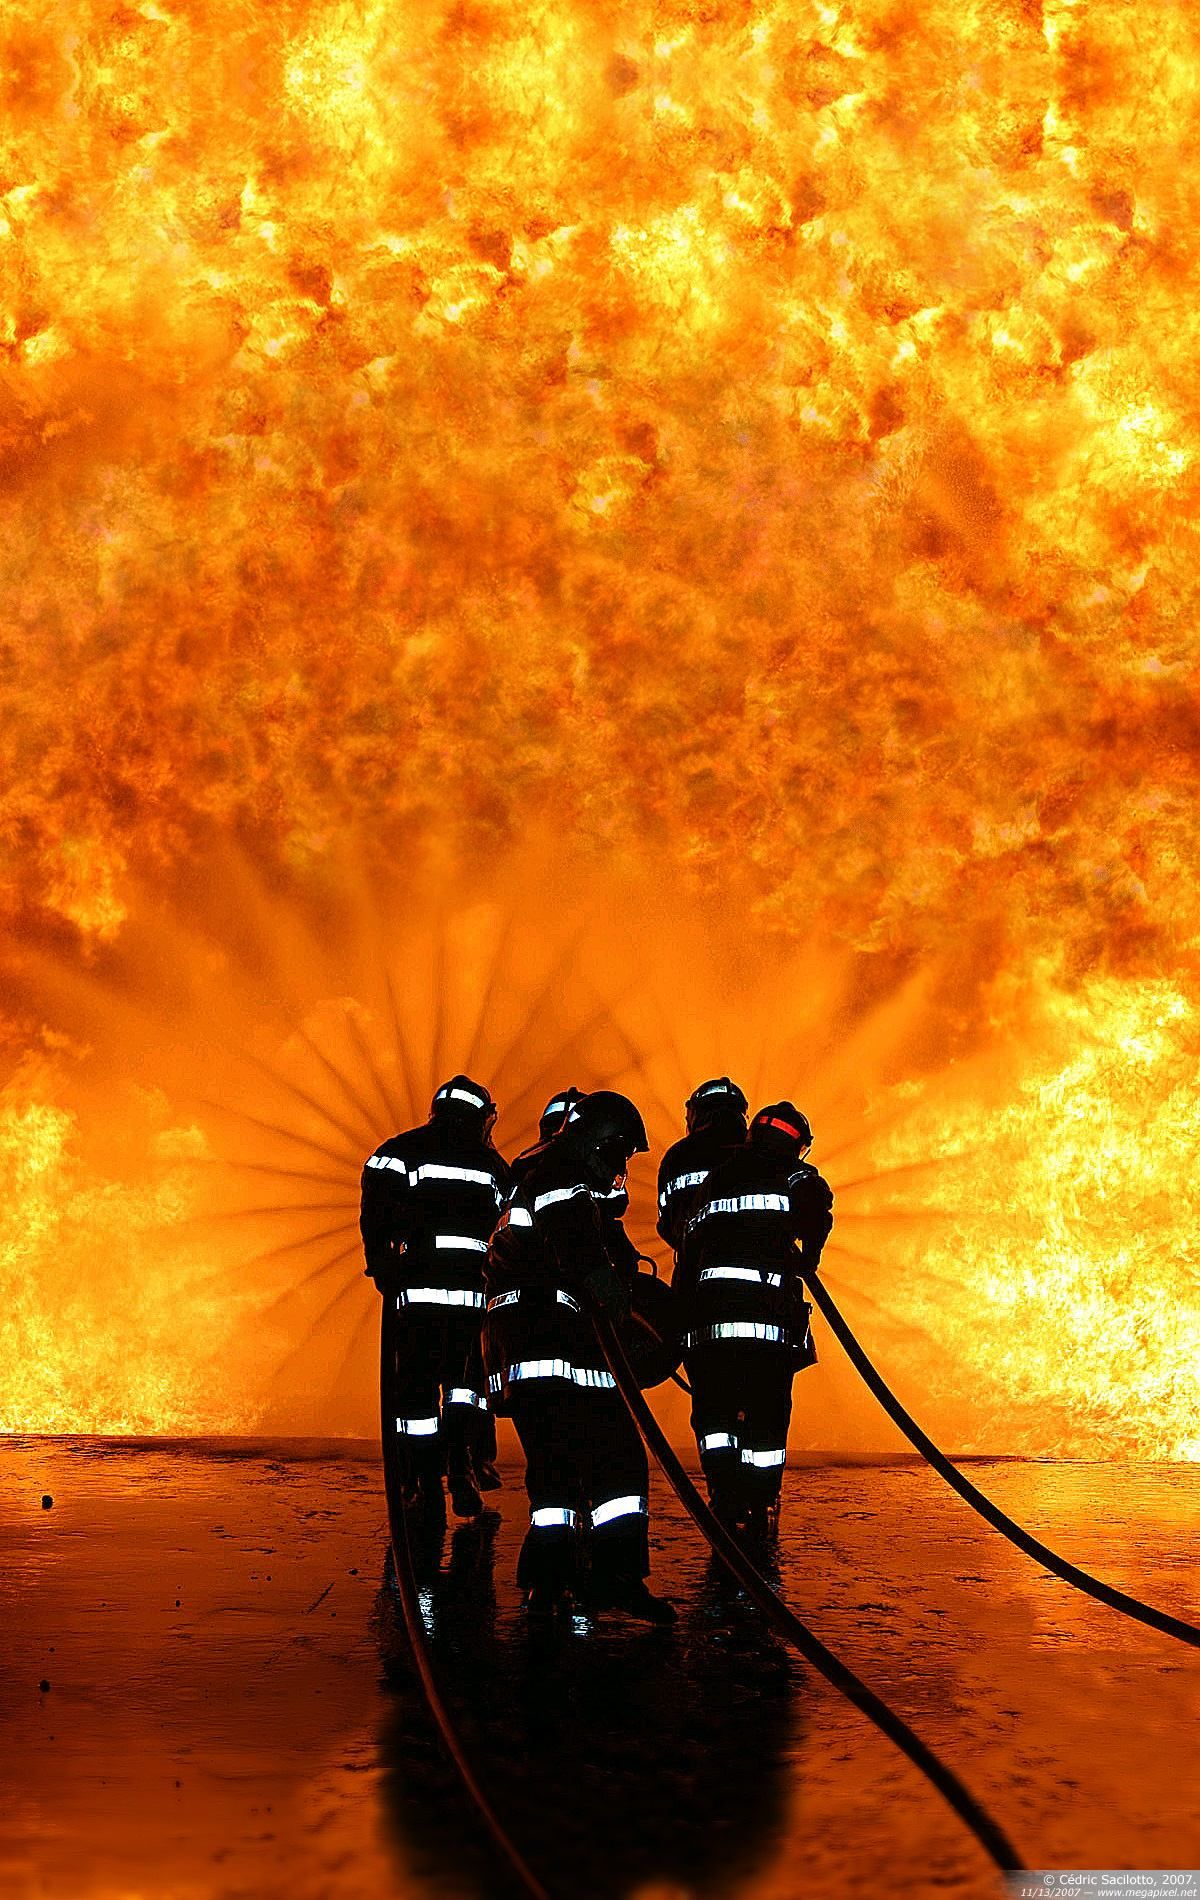 firefighter pictures Firefighters vertical wallpaper